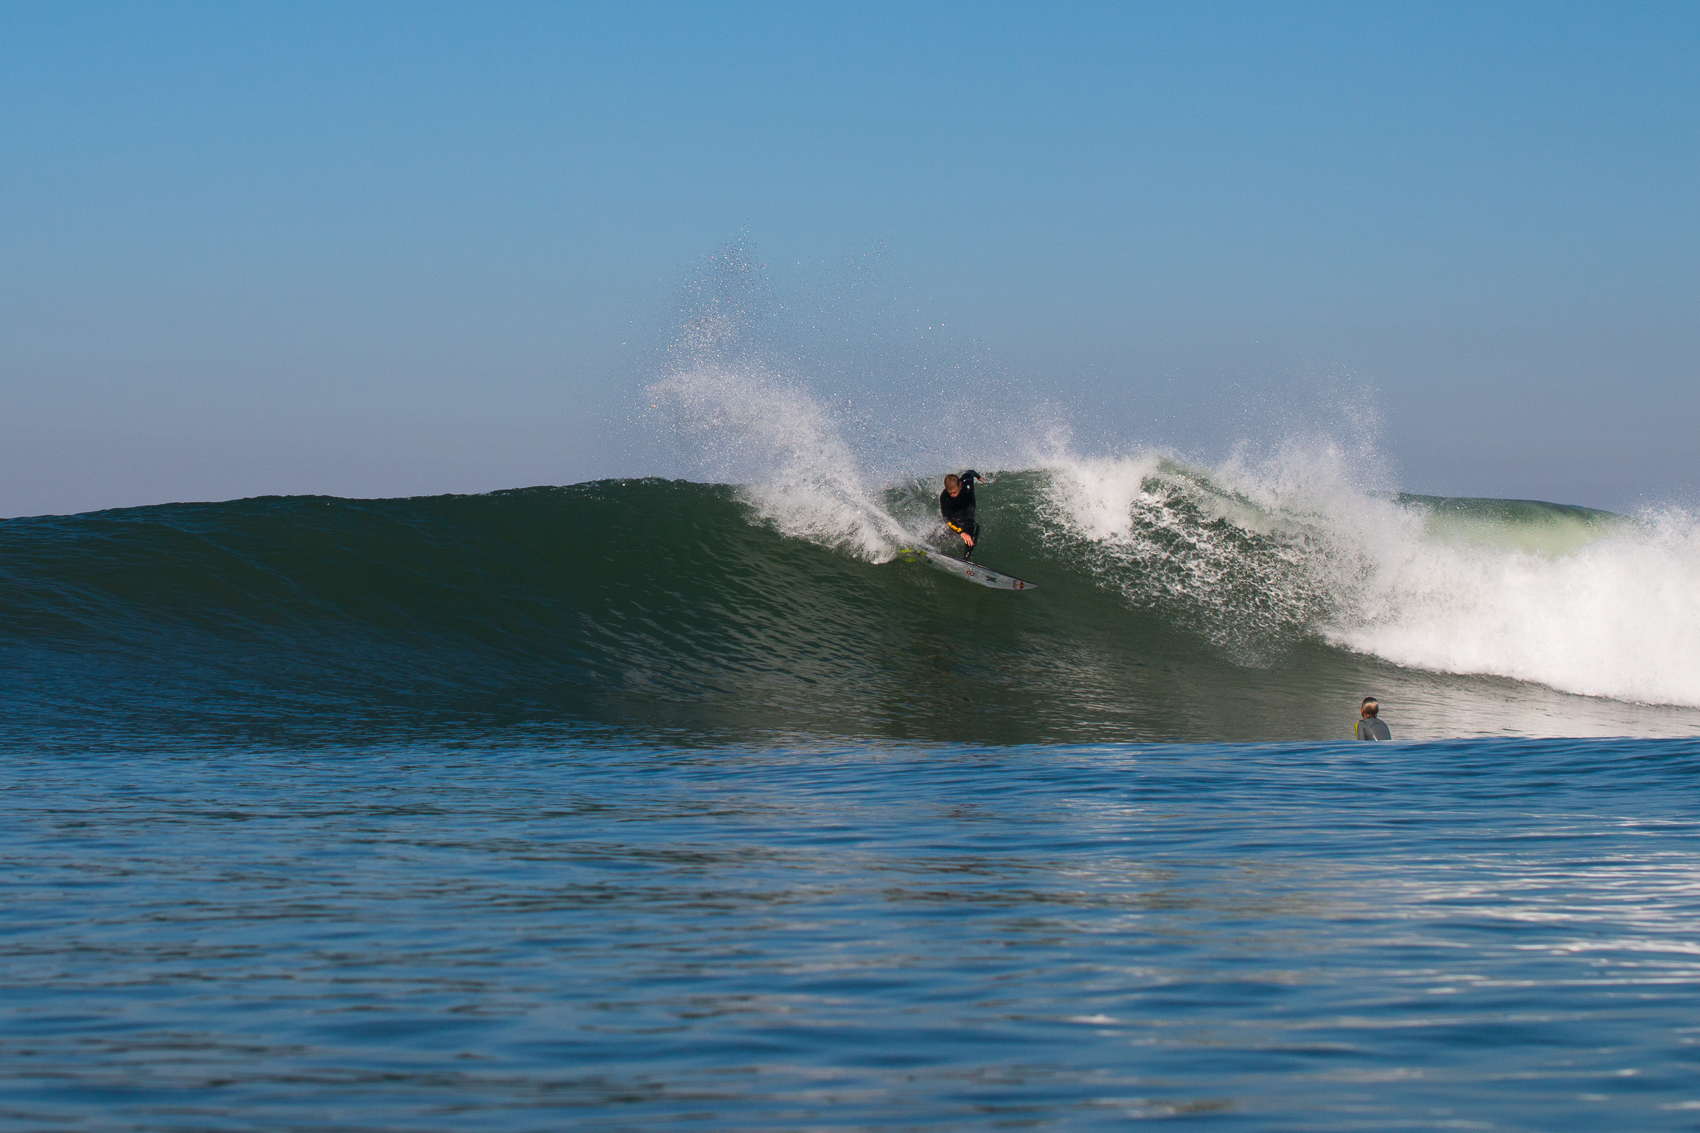 Kolohe Anding putting on a clinic at Lowers, San Clemente, CA.